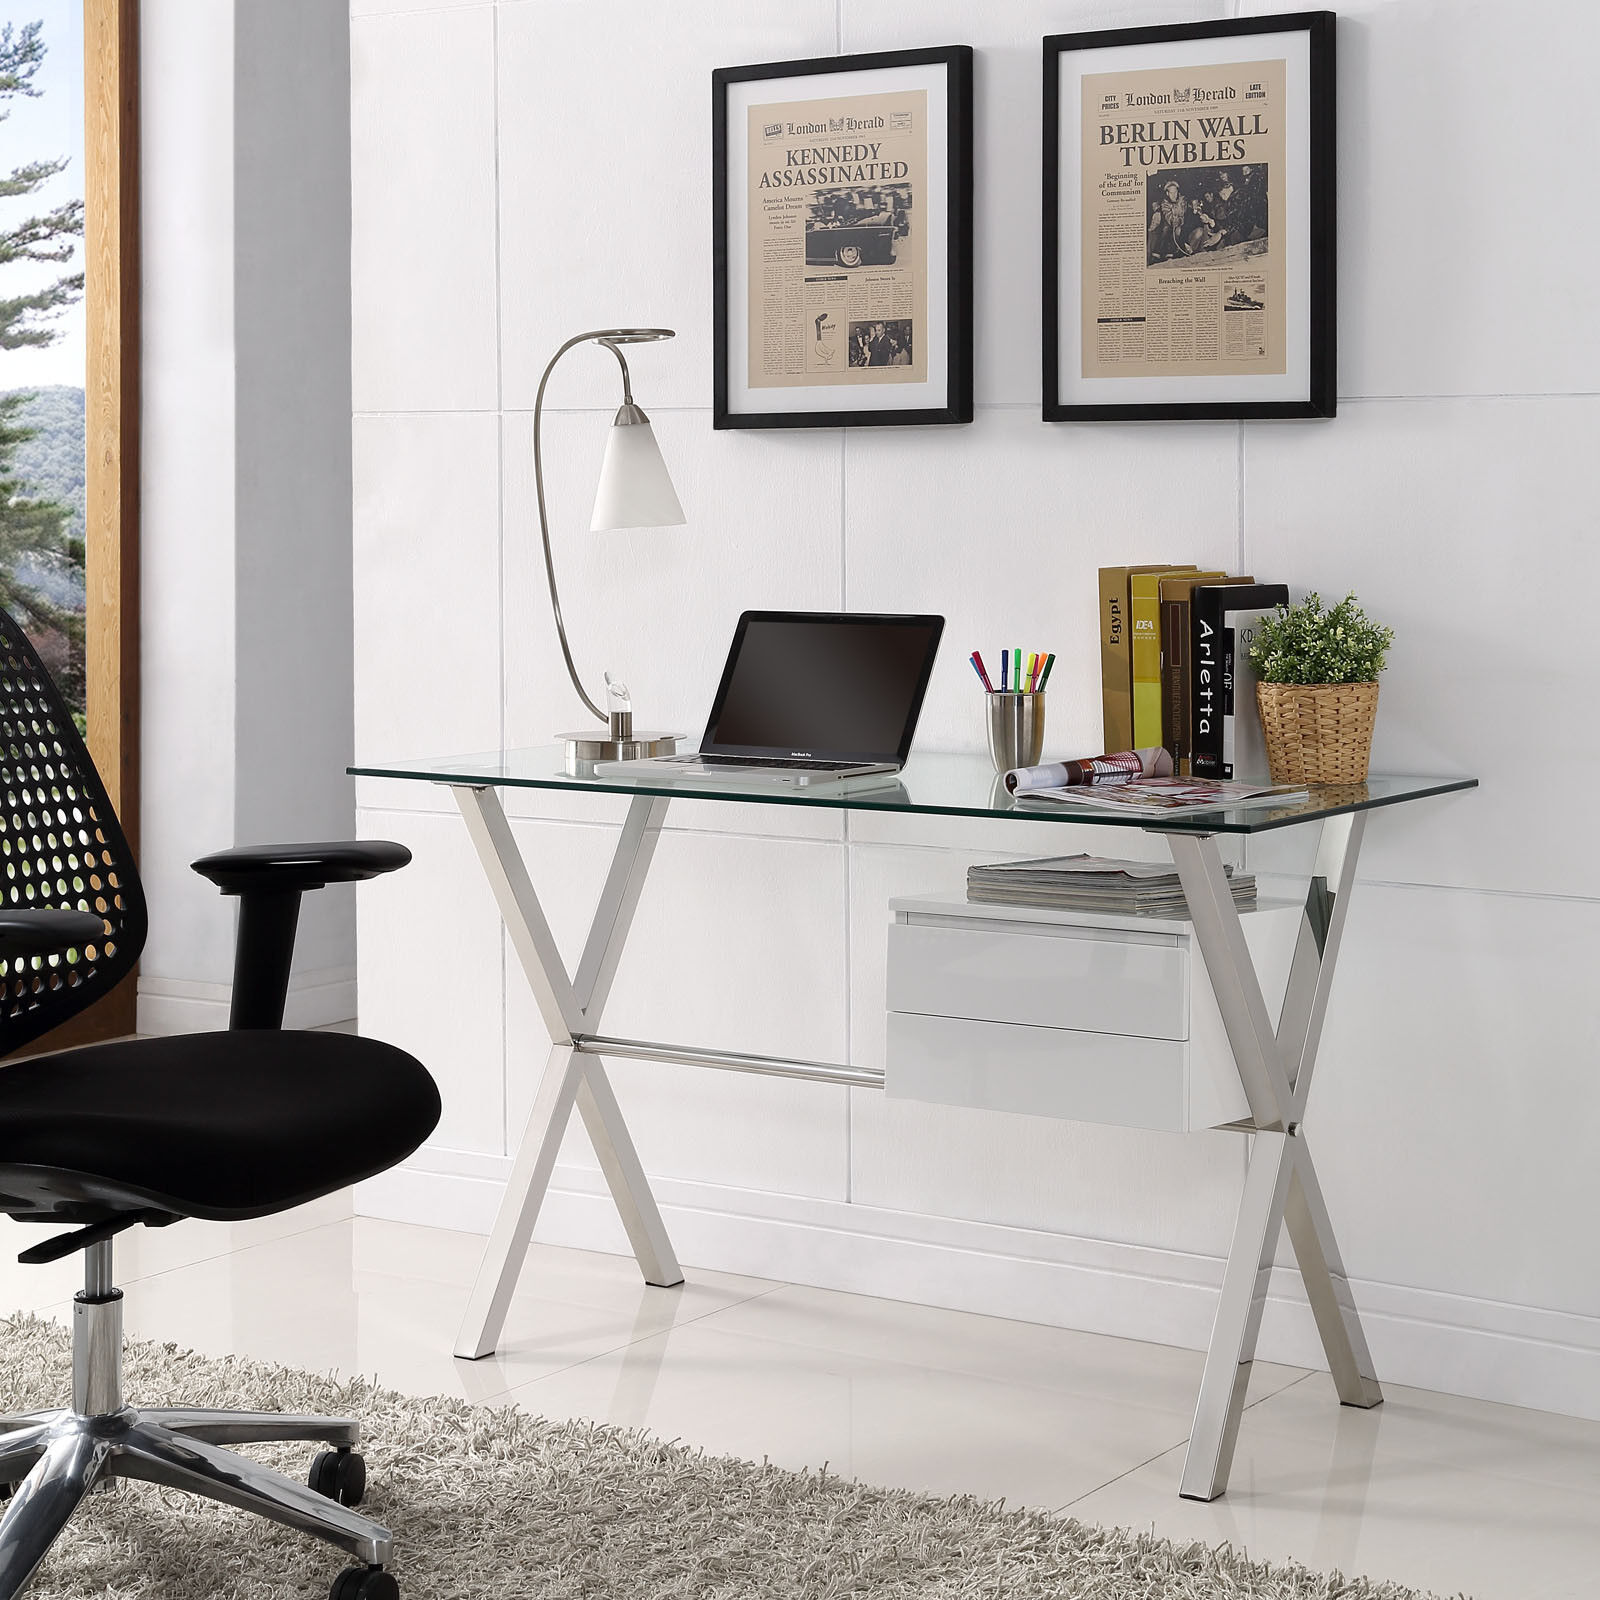 Details About Modway Stasis Contemporary Modern Glass Top Office Desk In White